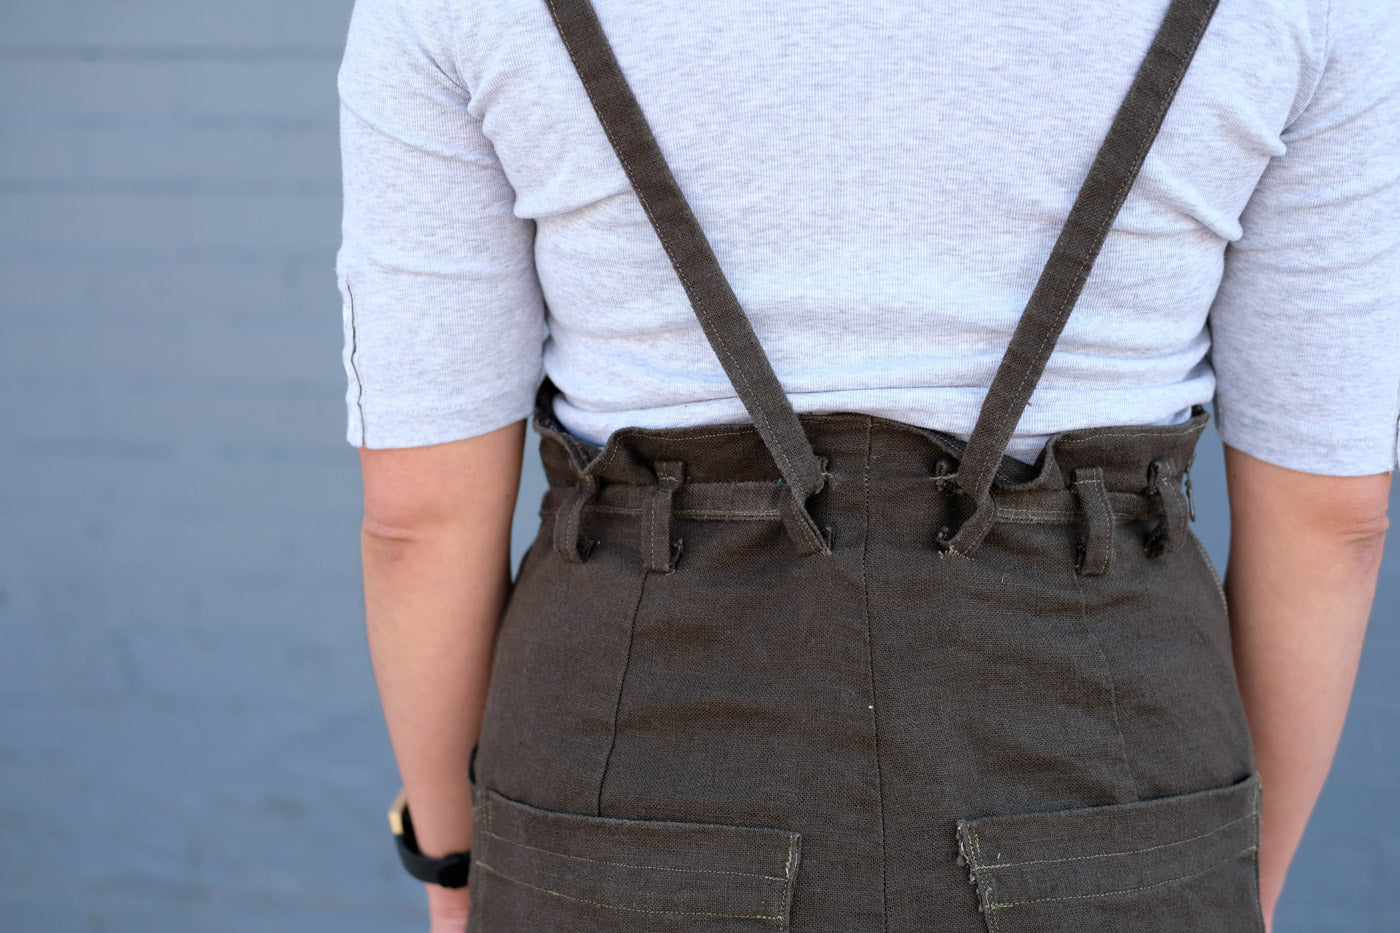 Belt loop detail on Victoria's Bibs